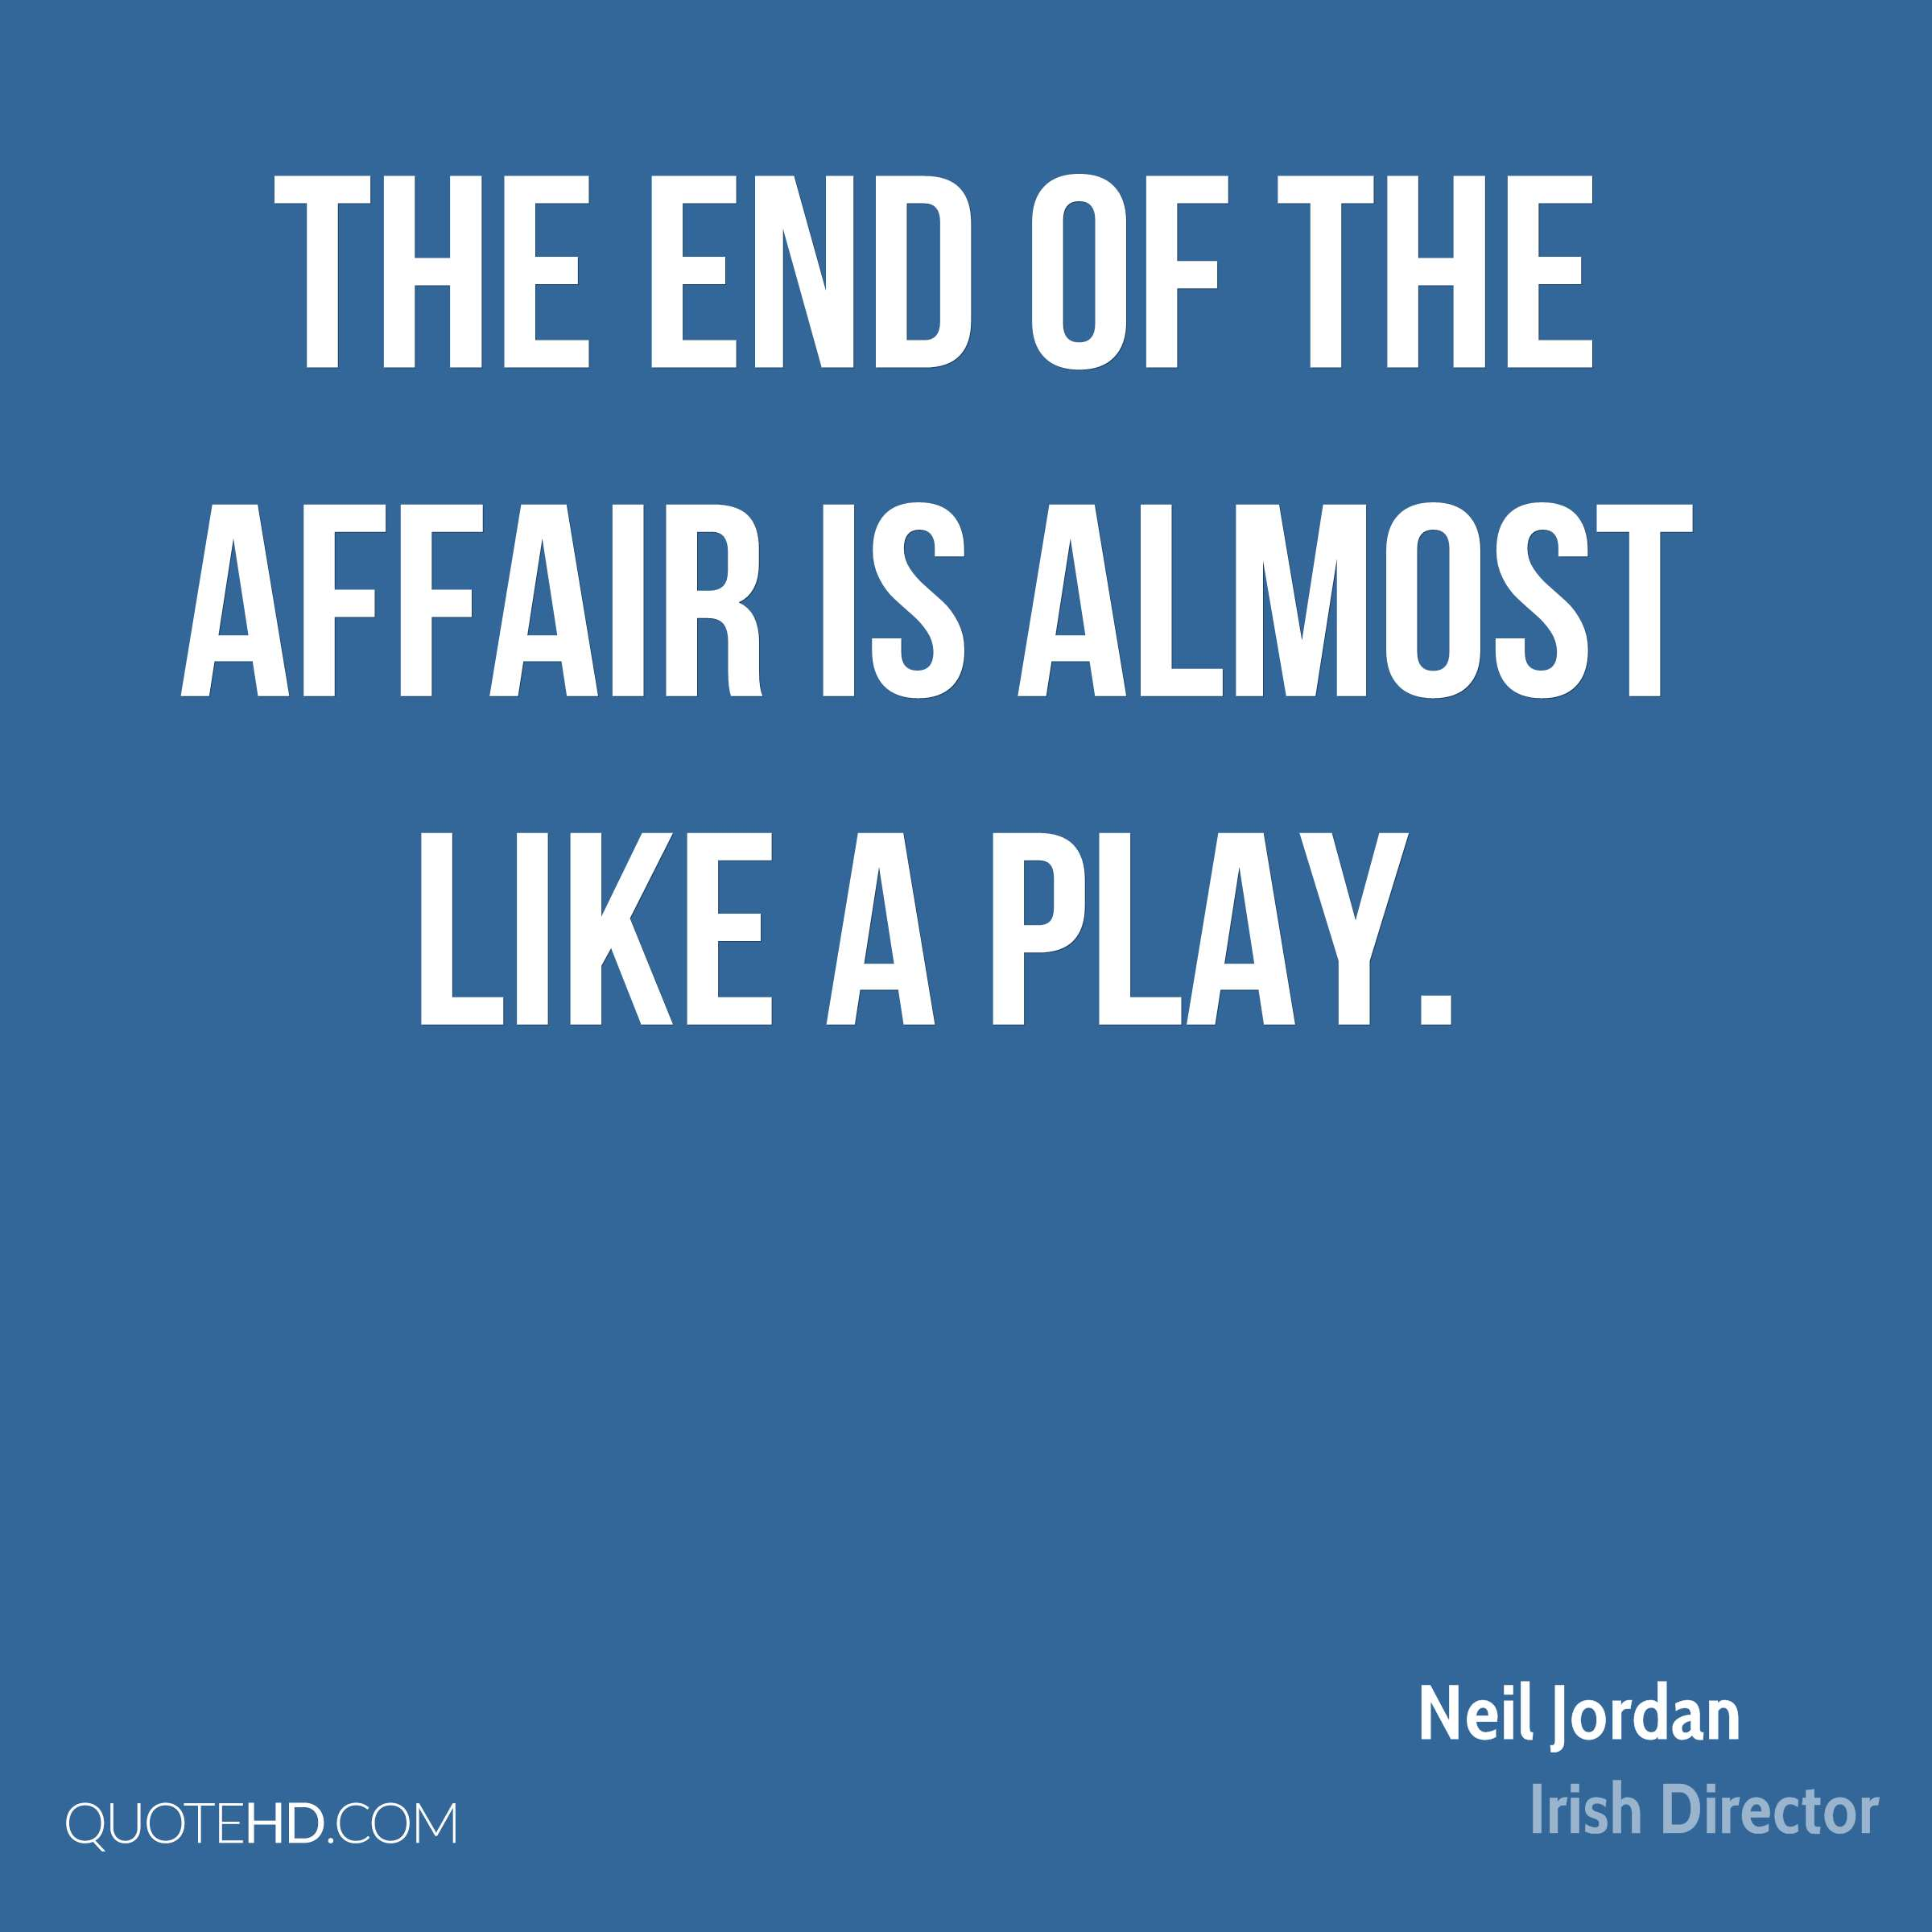 The End of the Affair is almost like a play.